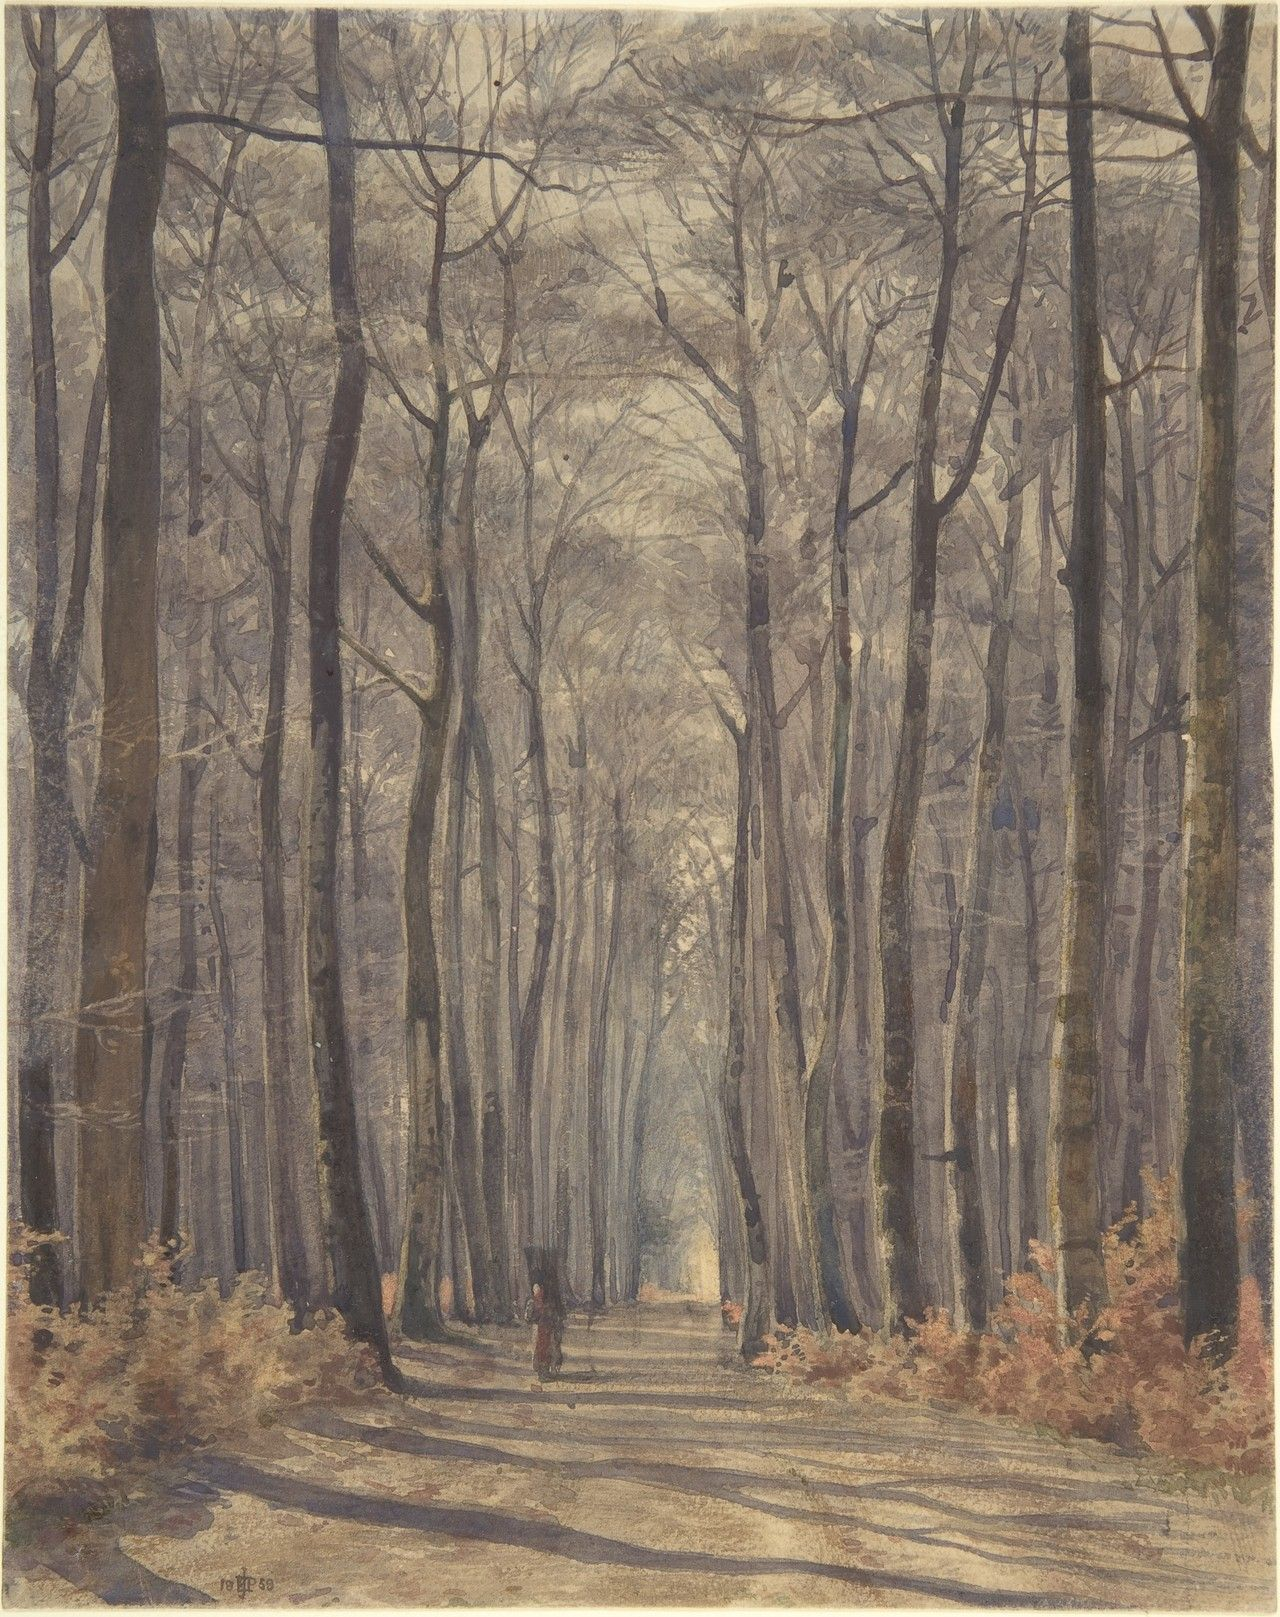 Sir Edward Poynter, An Allee in the Woods, 1859